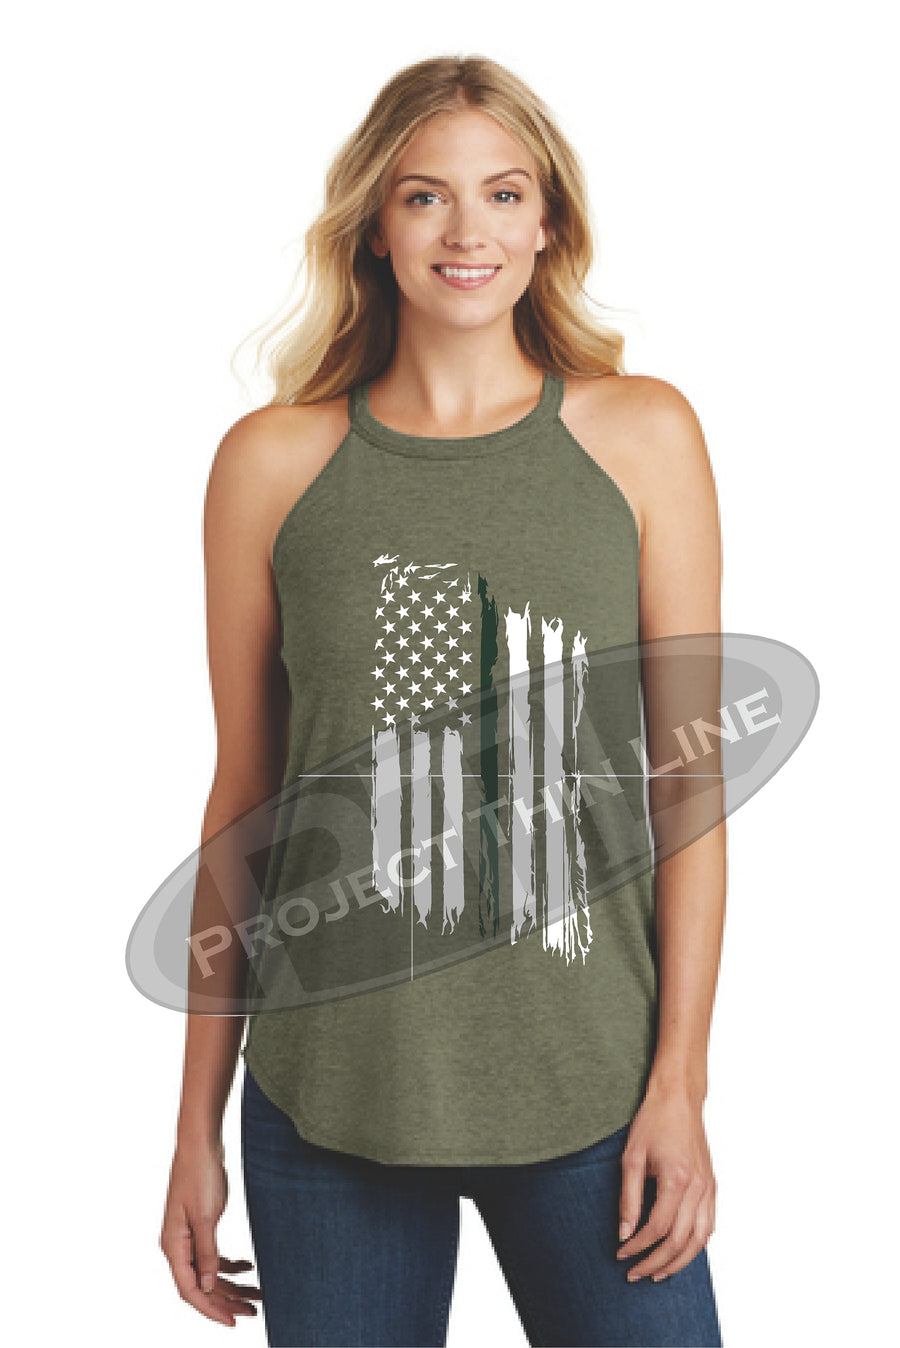 Black Tattered Thin GREEN Line American Flag Rocker Tank Top - FRONT